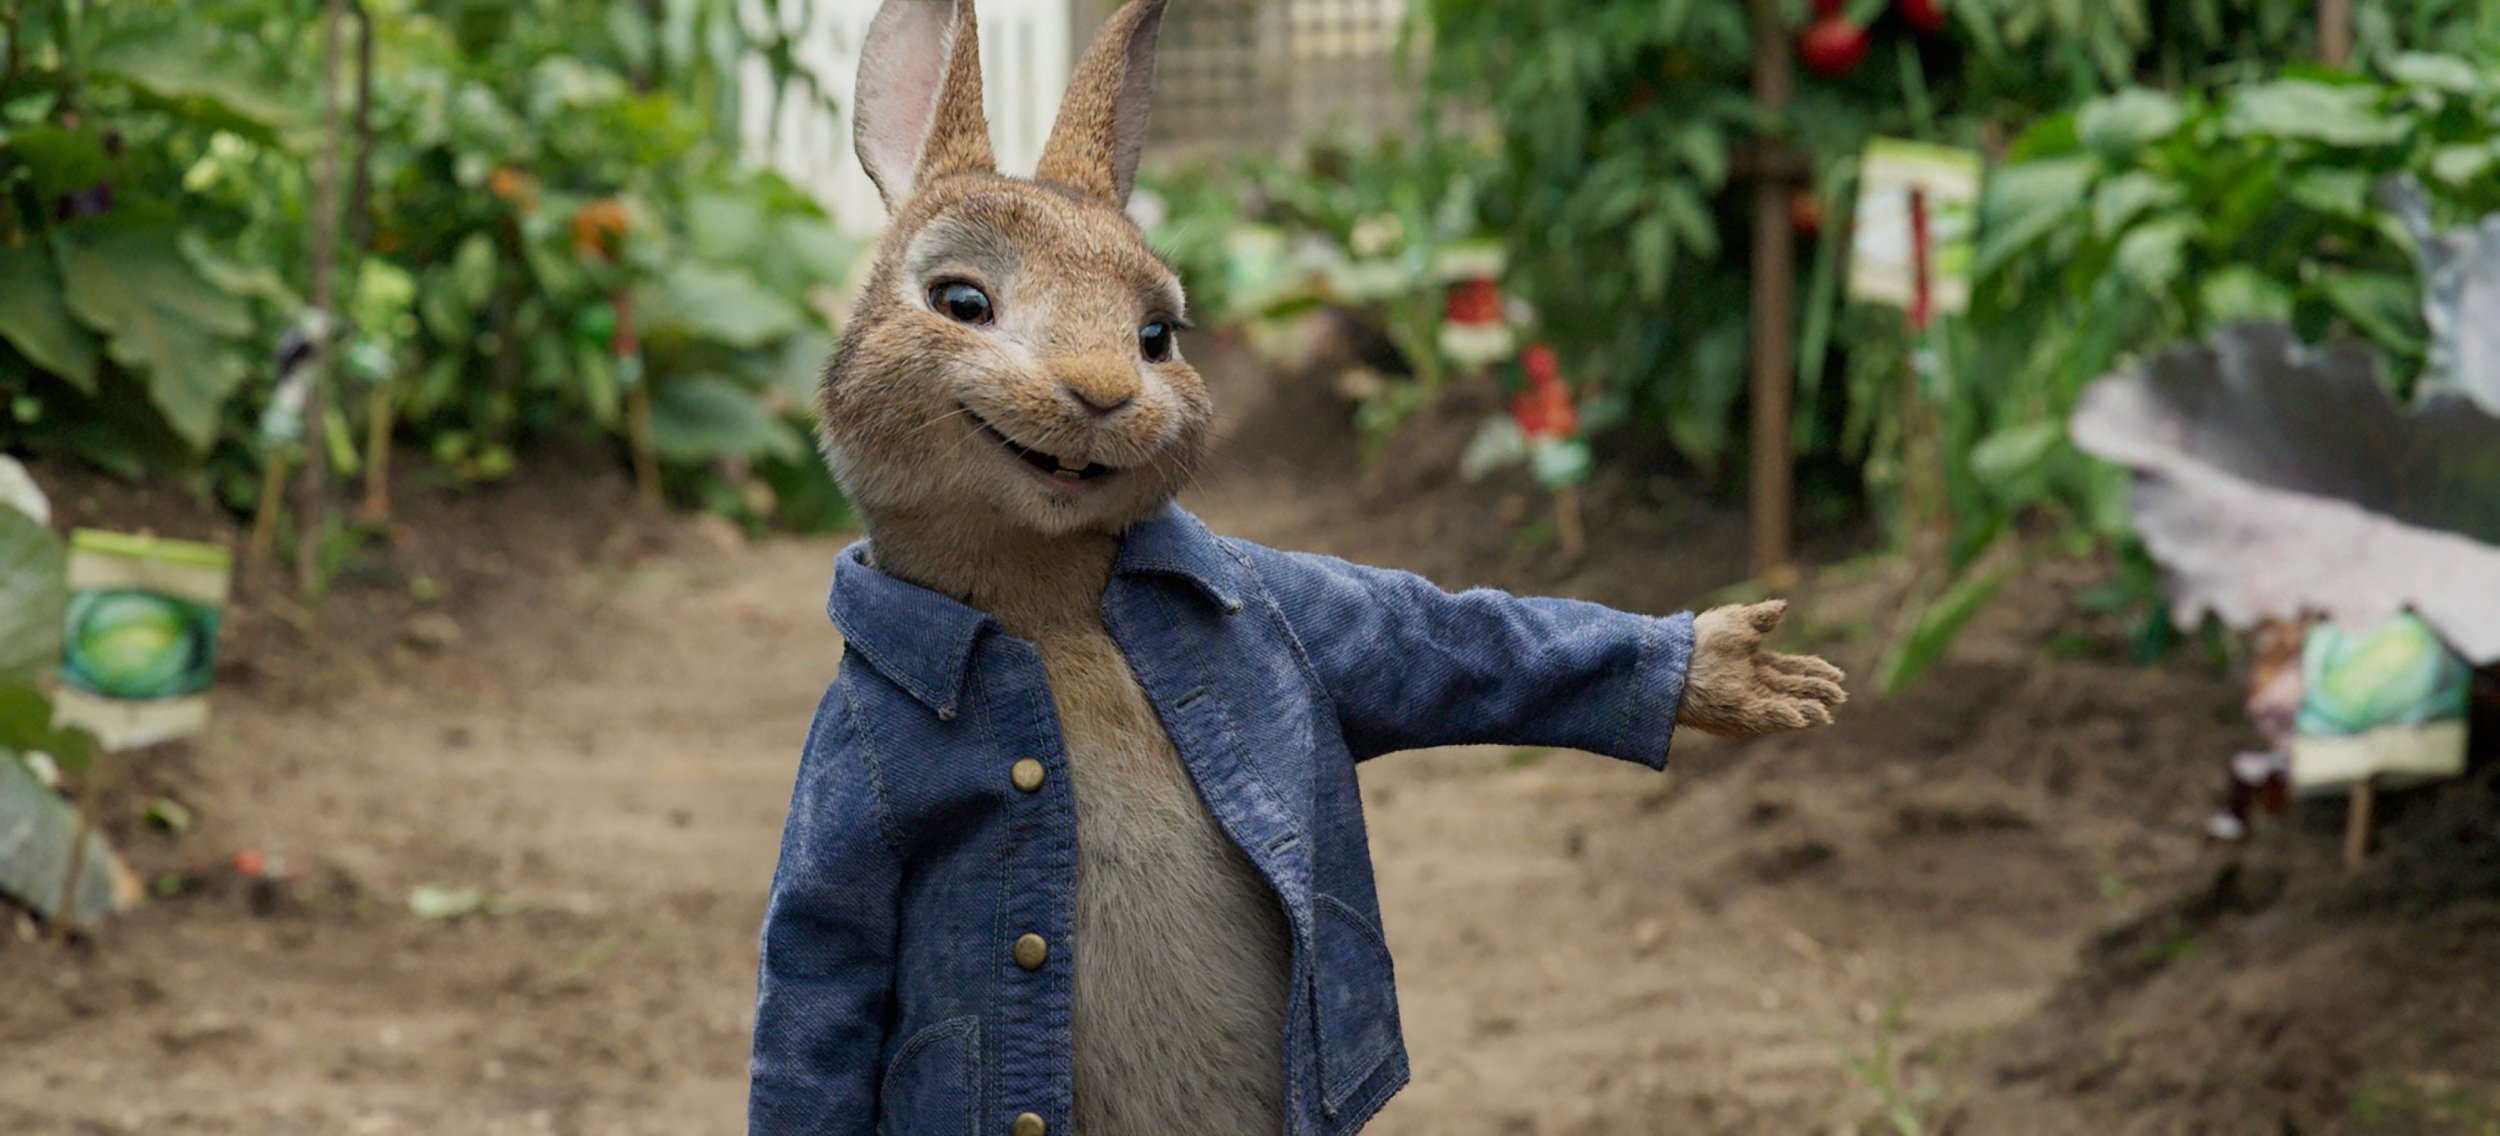 Peter Rabbit faces backlash after pelting allergy sufferer with blueberries